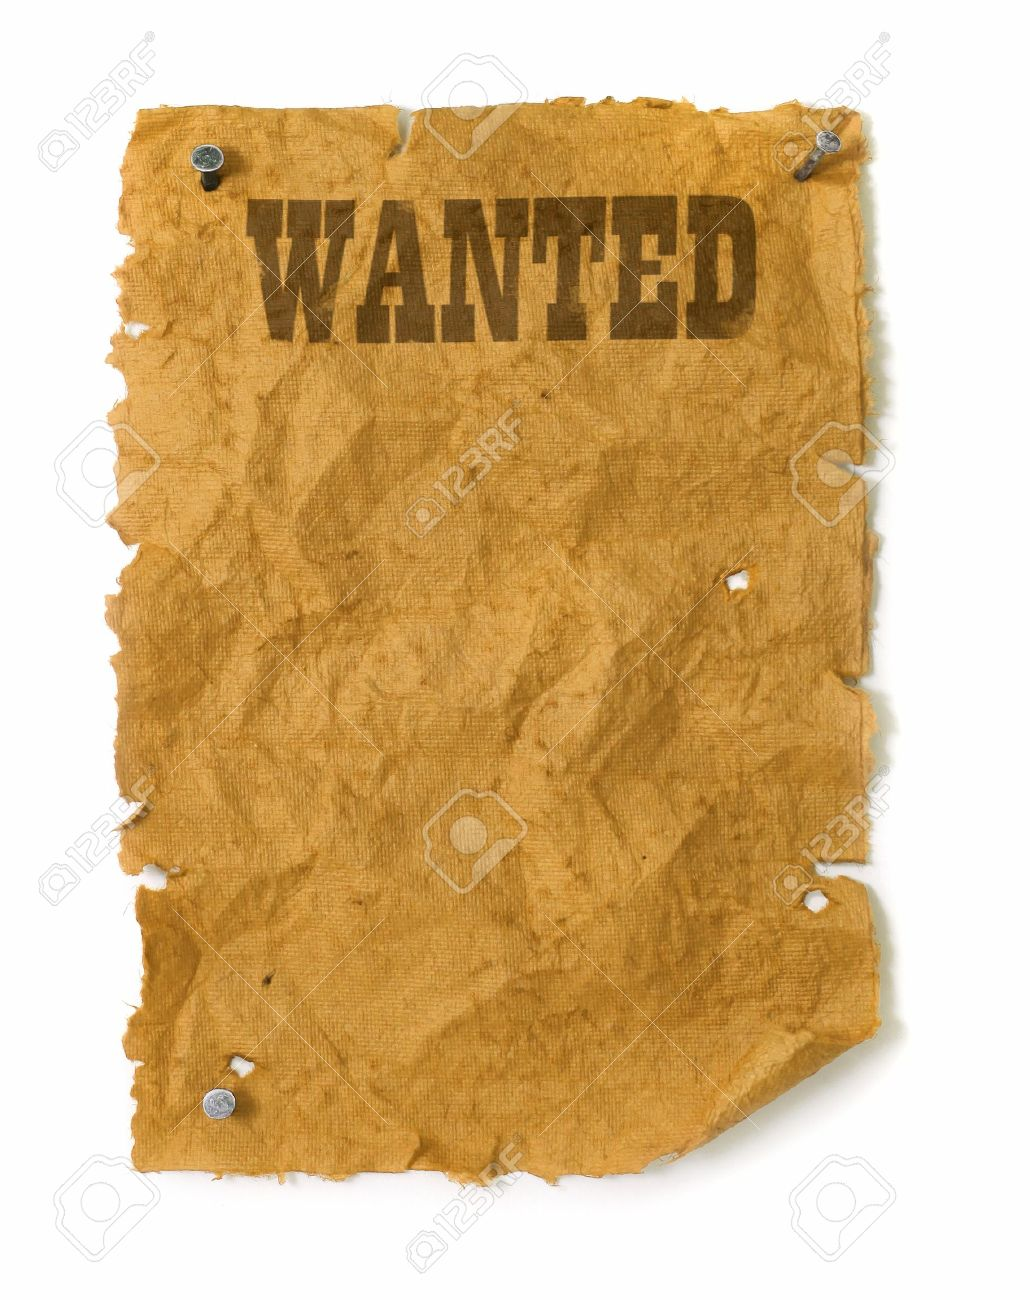 Wanted poster wild west style with nails, torn edges and bullet holes Stock Photo - 8722227